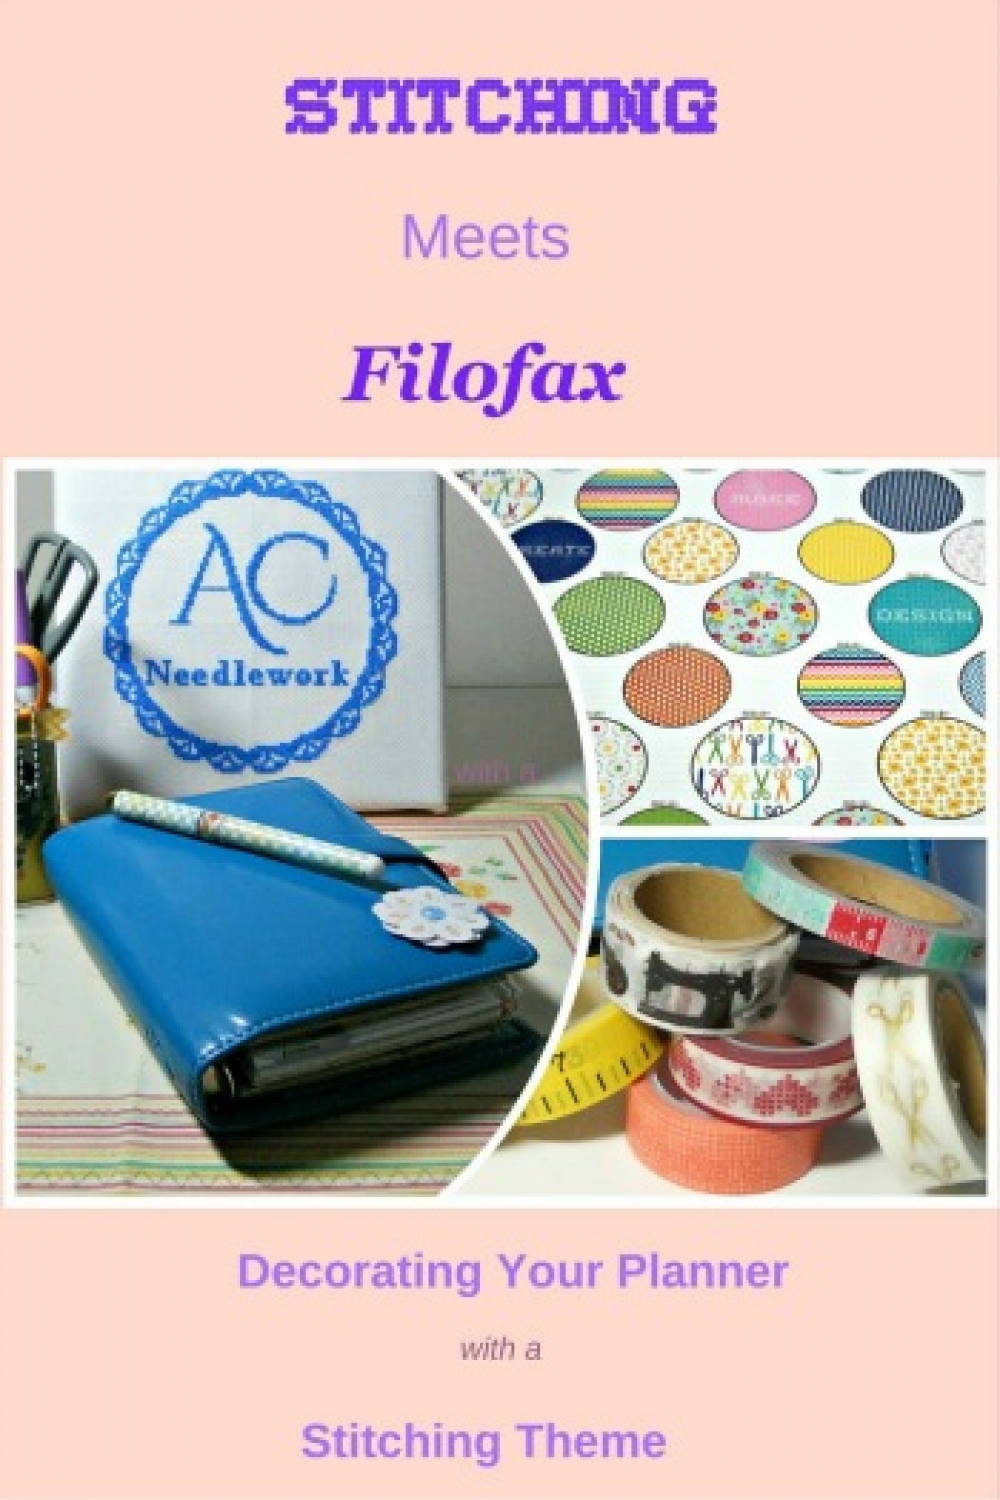 Stitching meets filofax decorating your planner with a for Planner decorating blogs